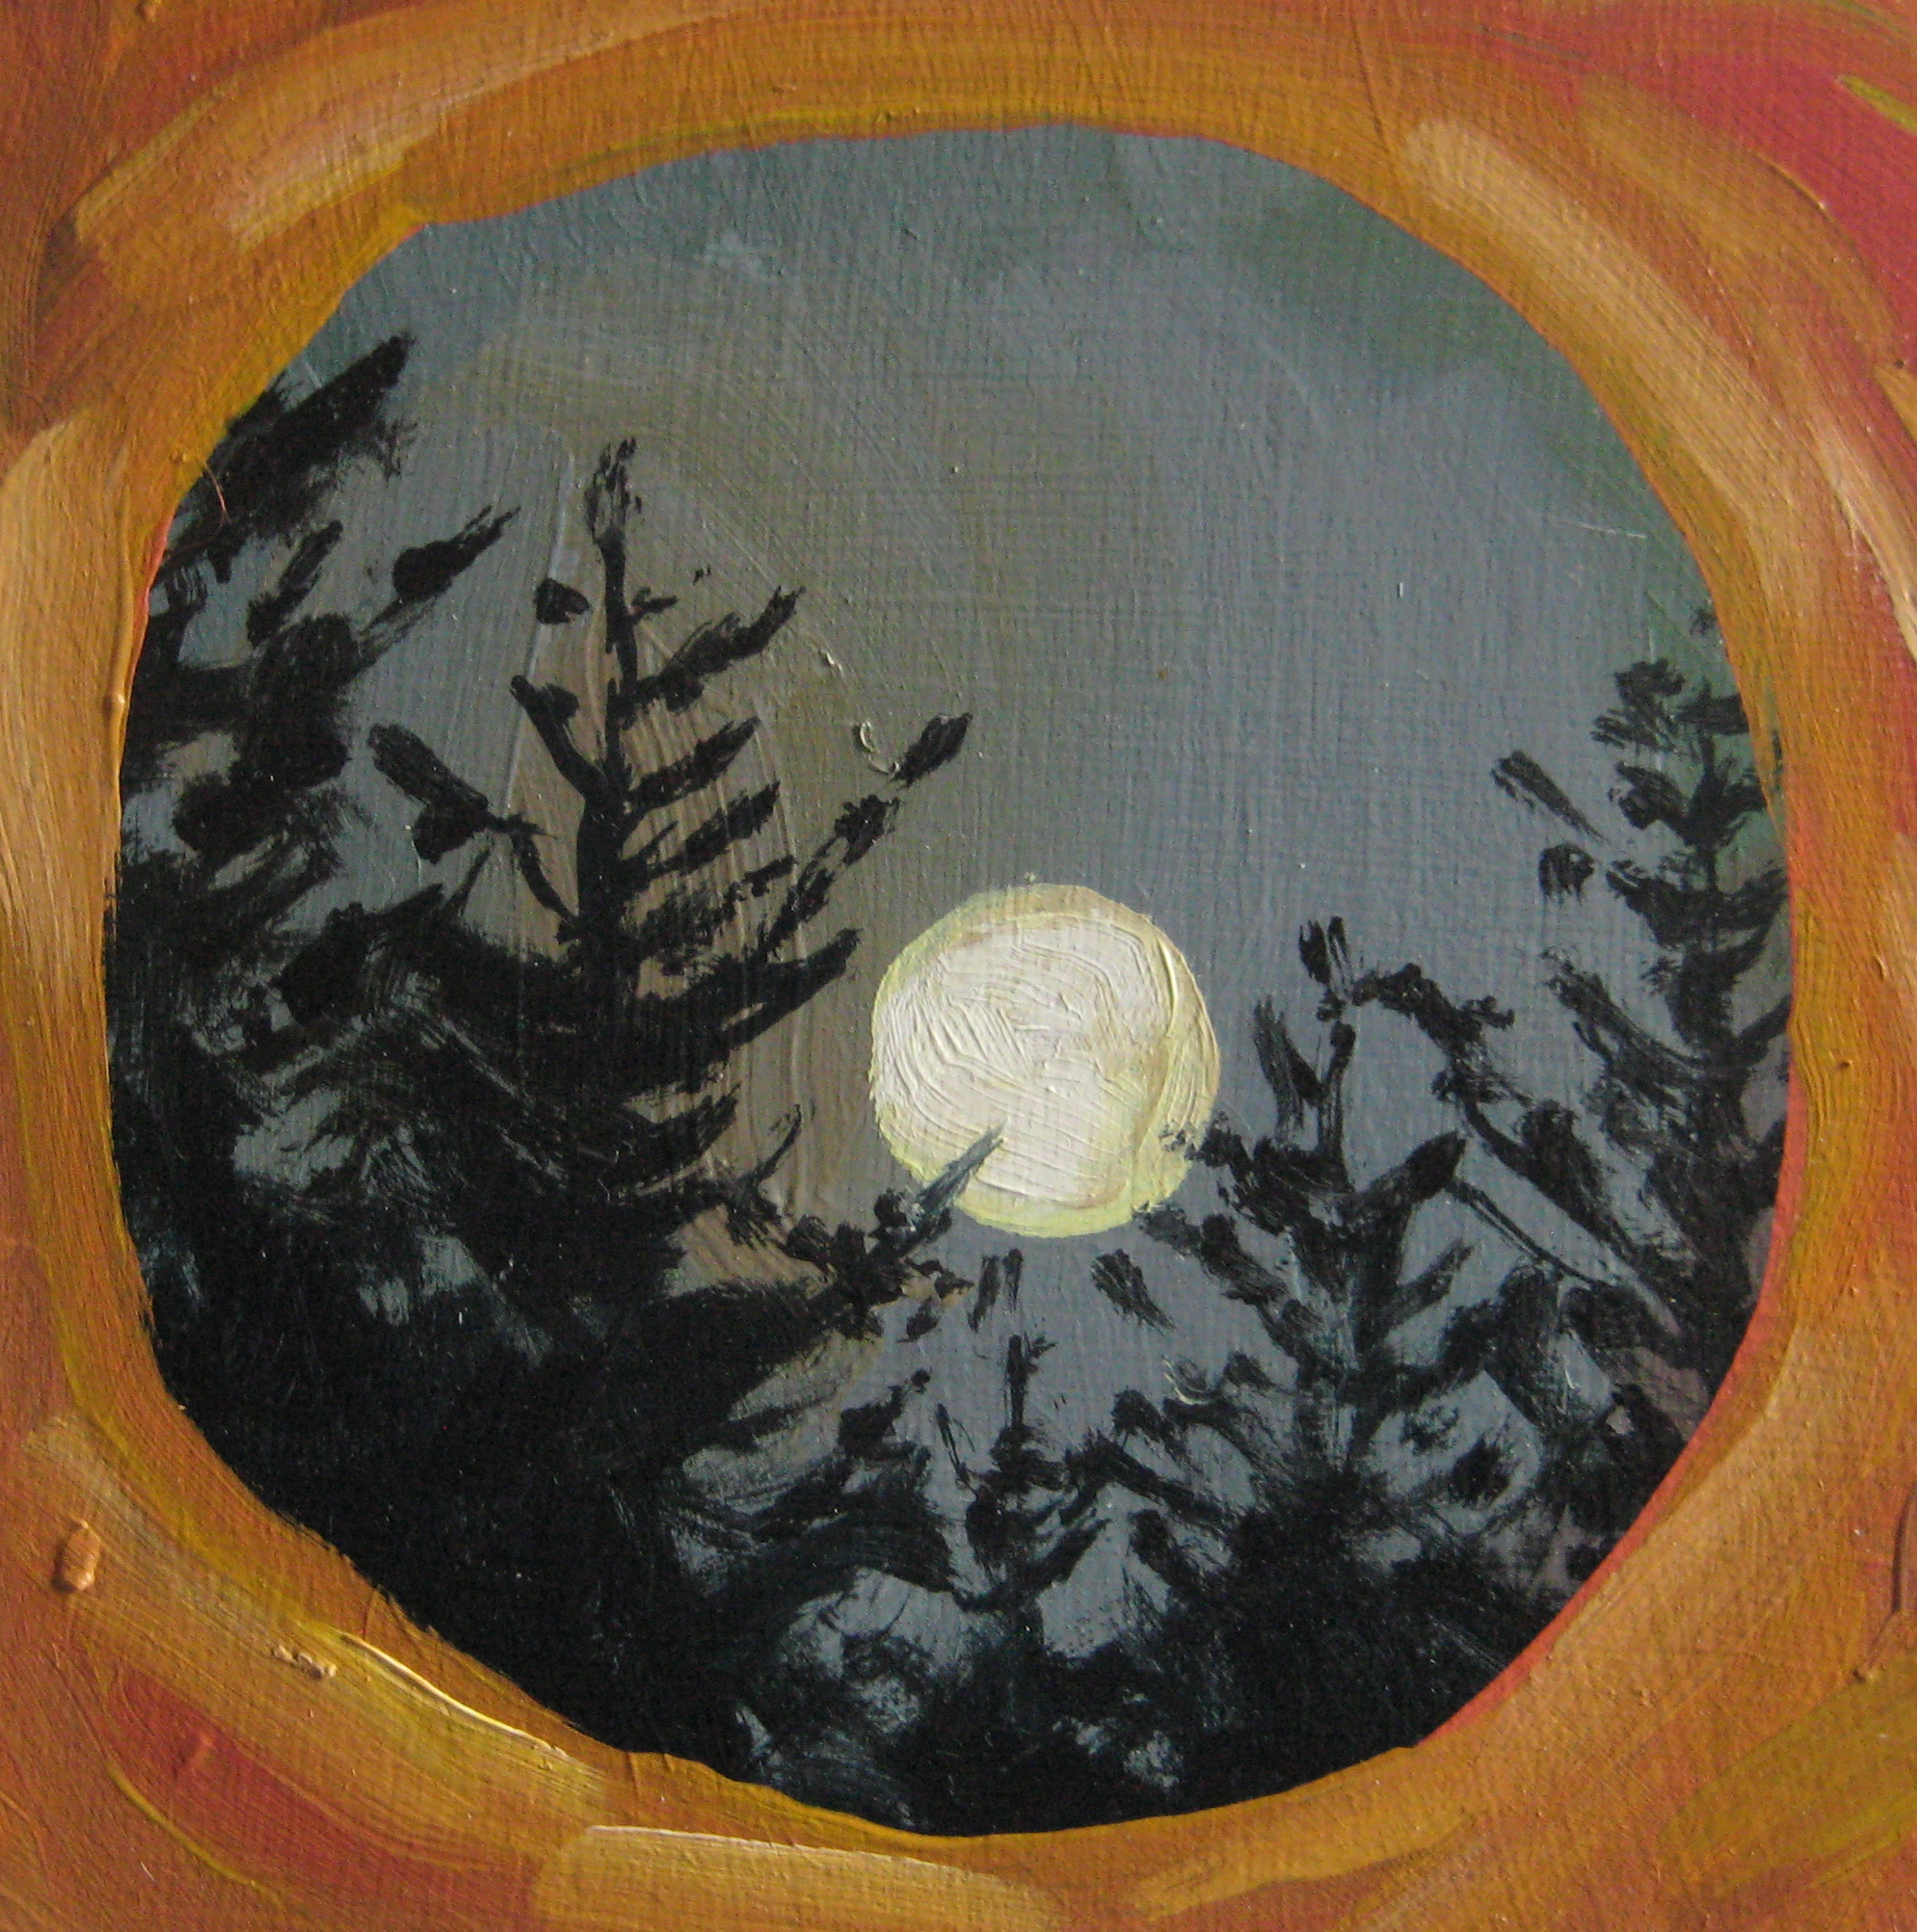 Full moon over forest